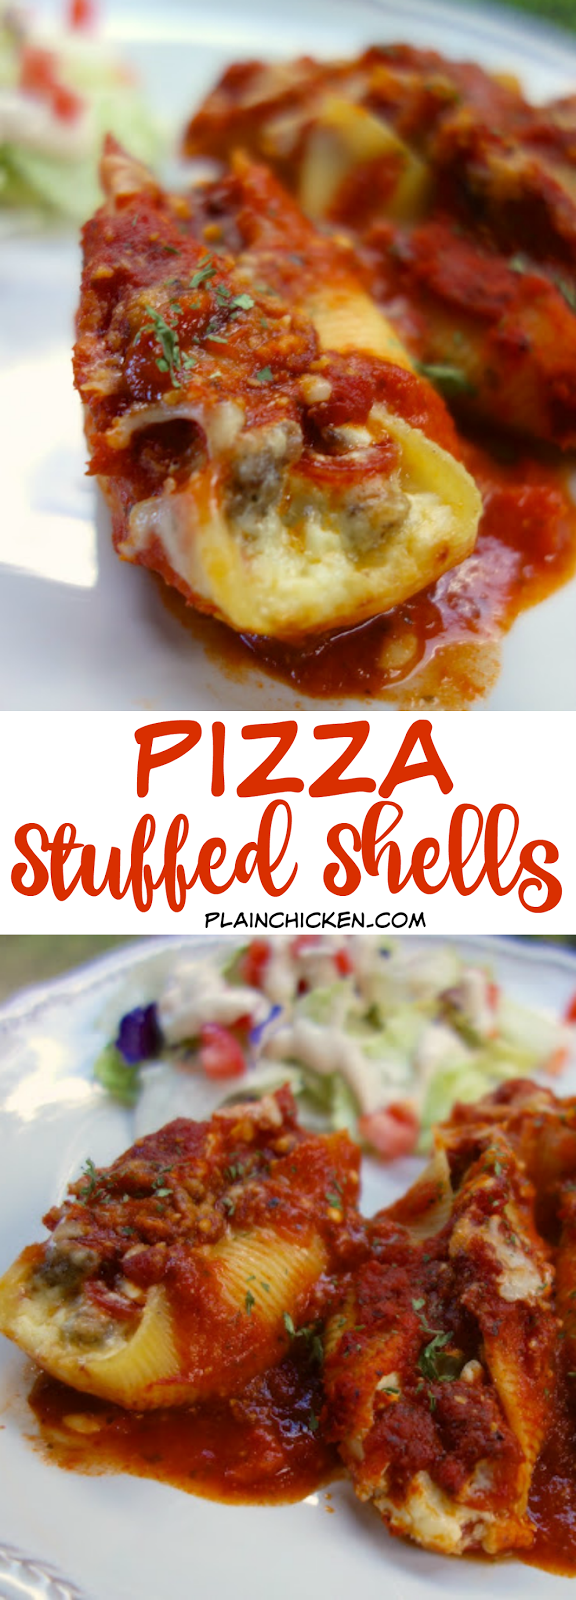 Pizza Stuffed Shells - jumbo pasta shells stuffed with cheese, sausage and pepperoni ,topped with spaghetti sauce and mozzarella - SO good! Kids and adults gobble this up!! Can make ahead of time and freeze for later. Stuffed Shells - jumbo pasta shells stuffed with cheese, sausage and pepperoni ,topped with spaghetti sauce and mozzarella - SO good! Kids and adults gobble this up!! Can make ahead of time and freeze for later.